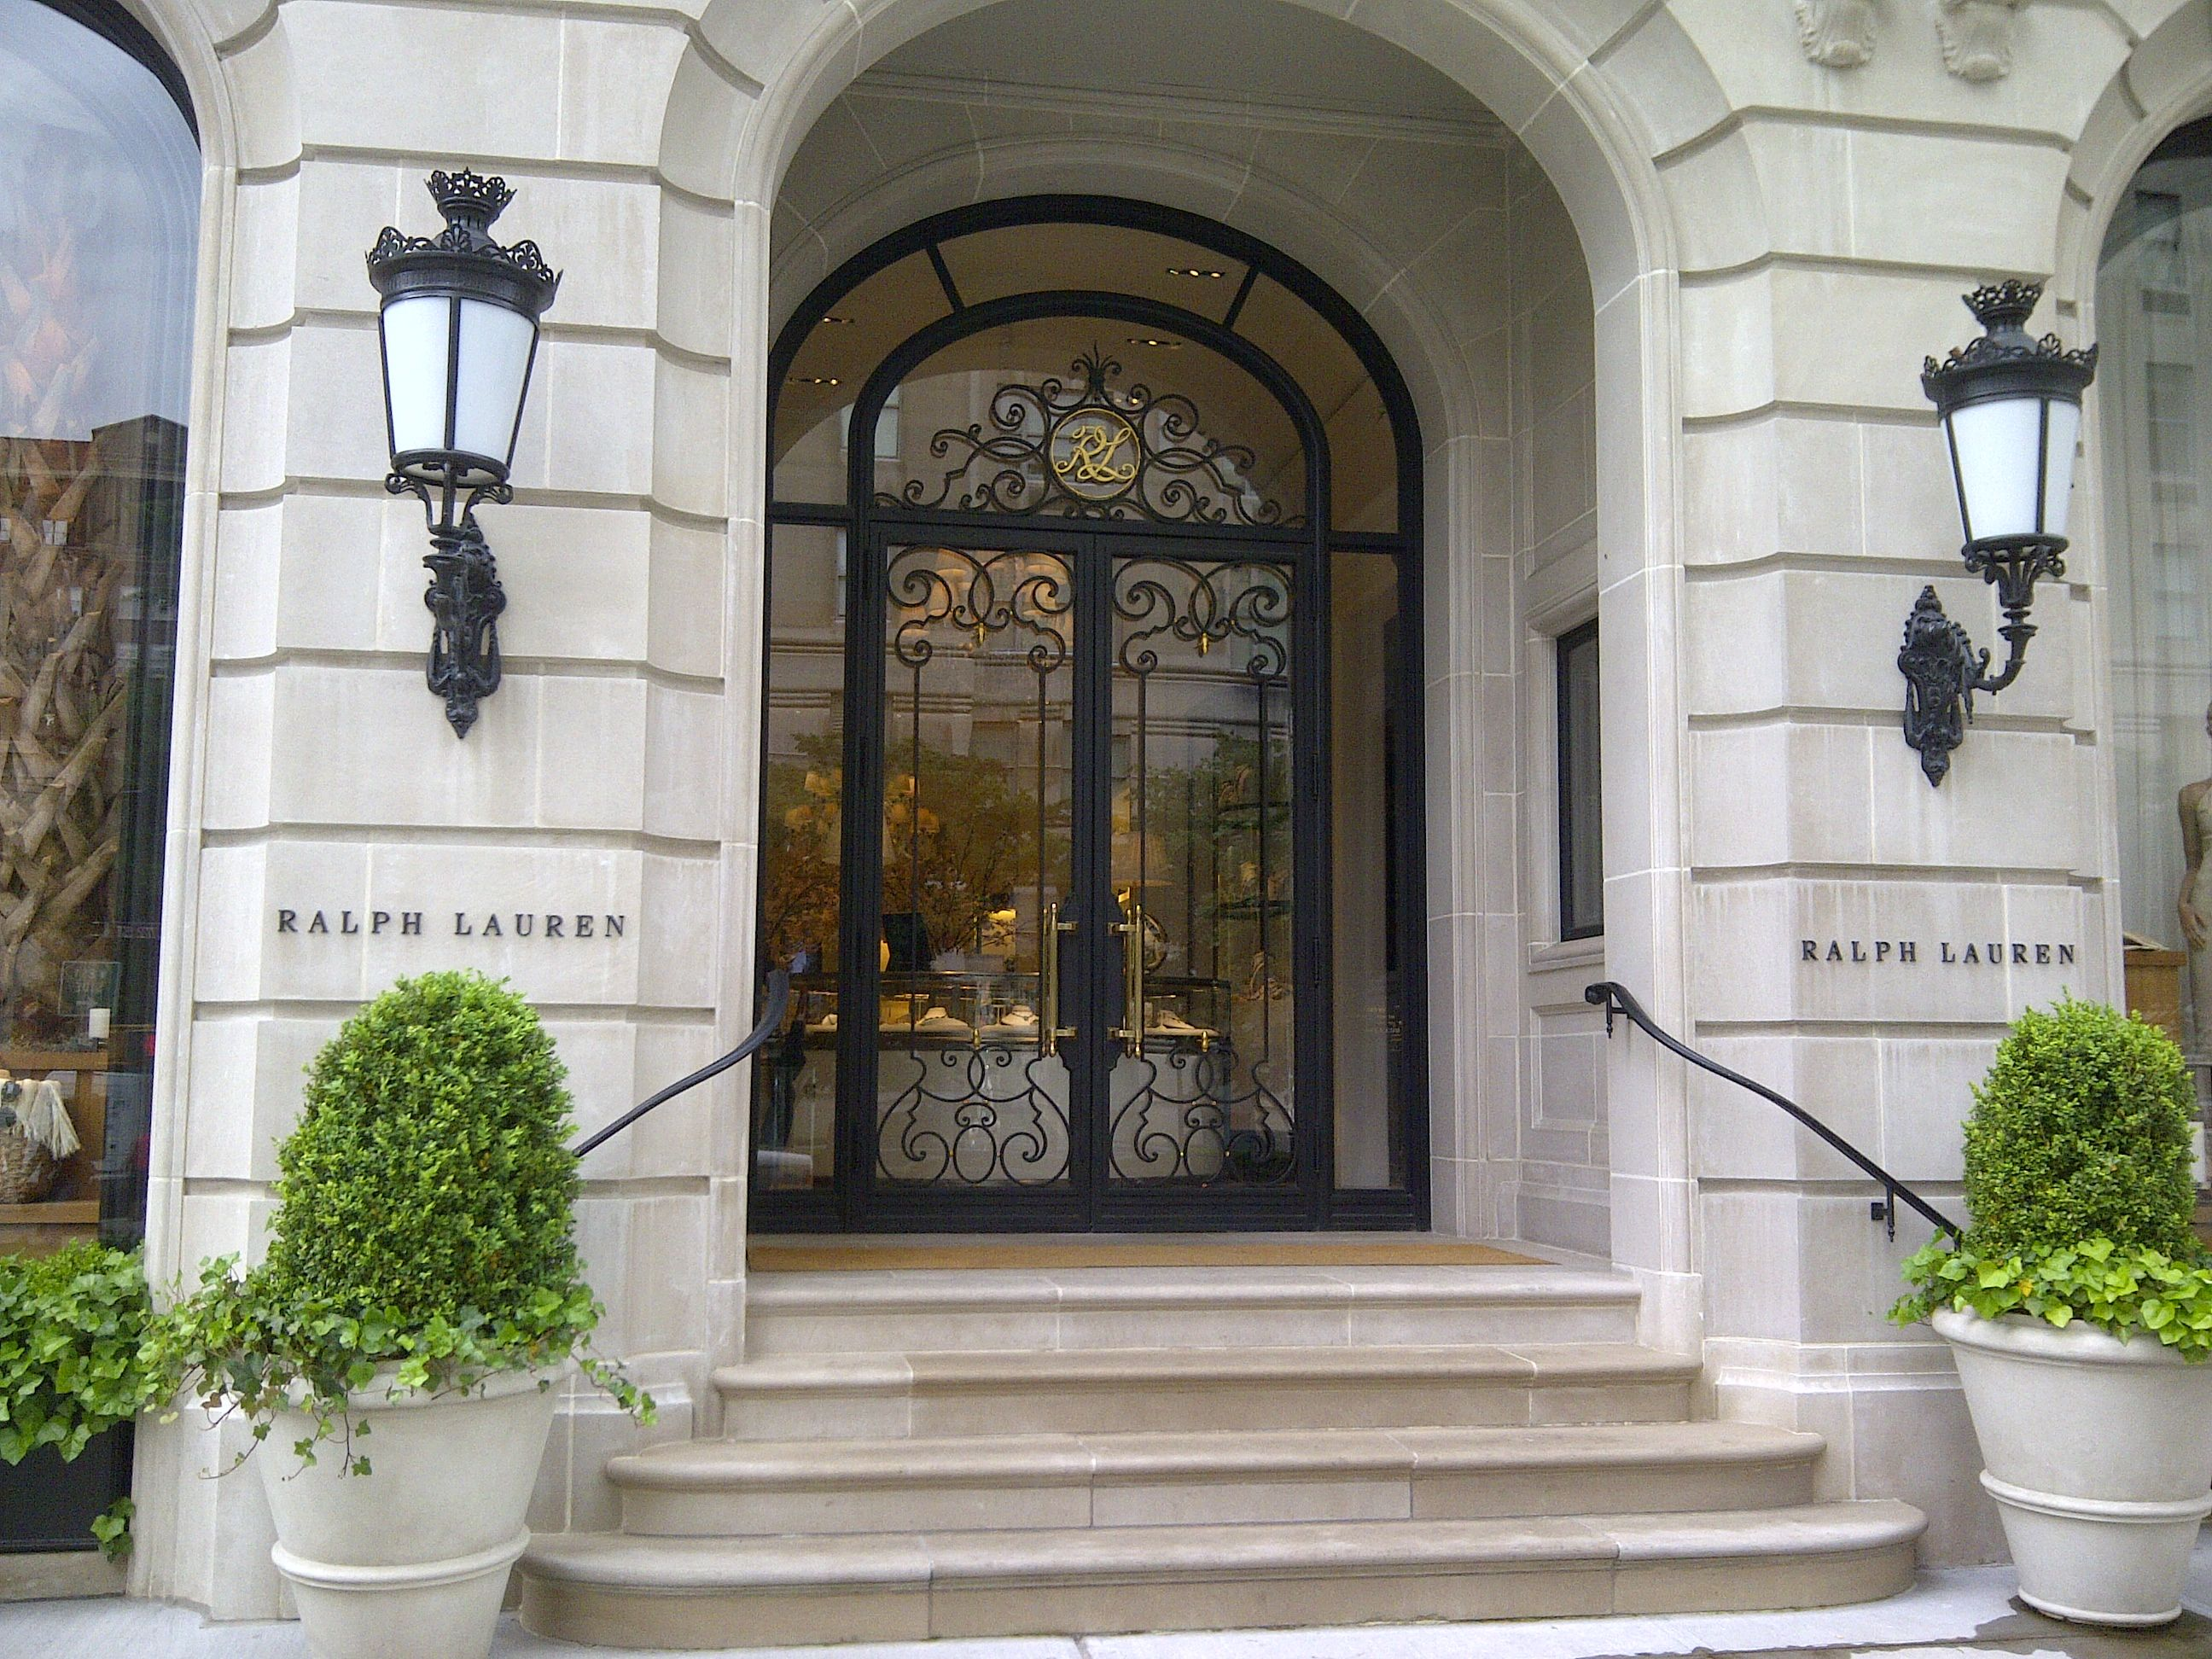 Ralph lauren flagship store new york city rivercroft for Ralph lauren flagship store nyc